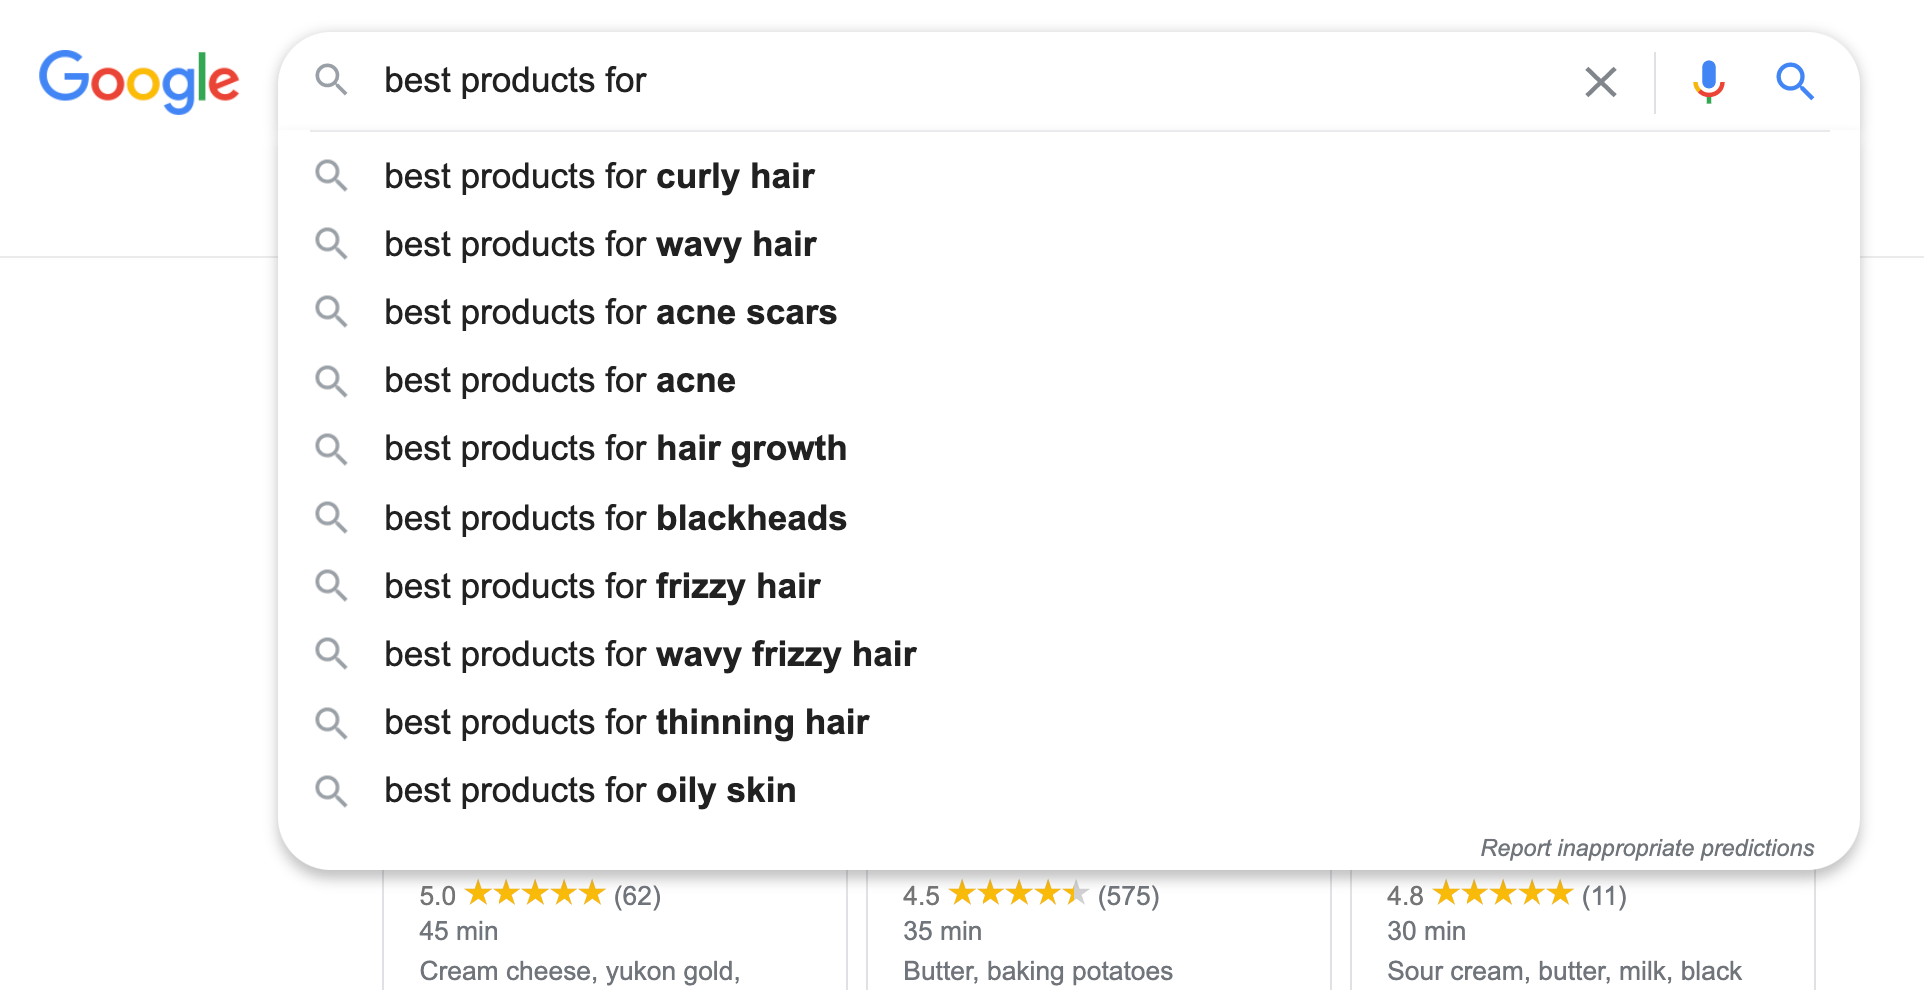 Keyword research can be used to find more topics. You can use Google auto suggest and type Best * for * to see a long list of recently searched keywords and phrases.